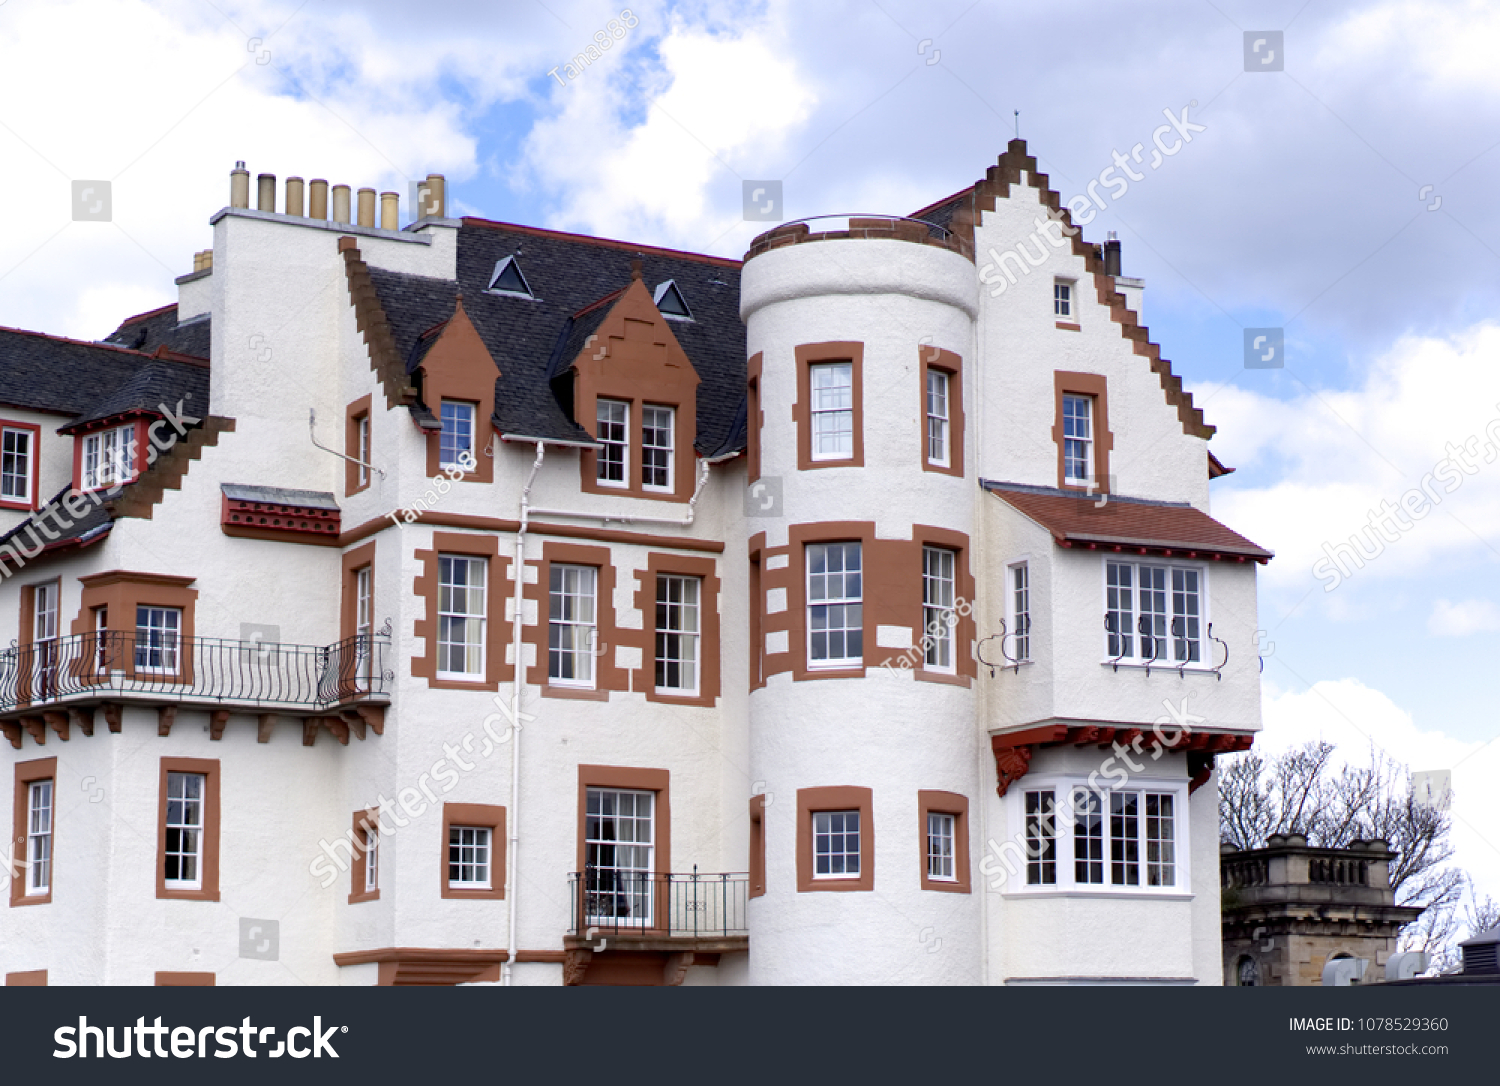 Typical 18th Century British Townhouses Edinburgh Scotland Uk